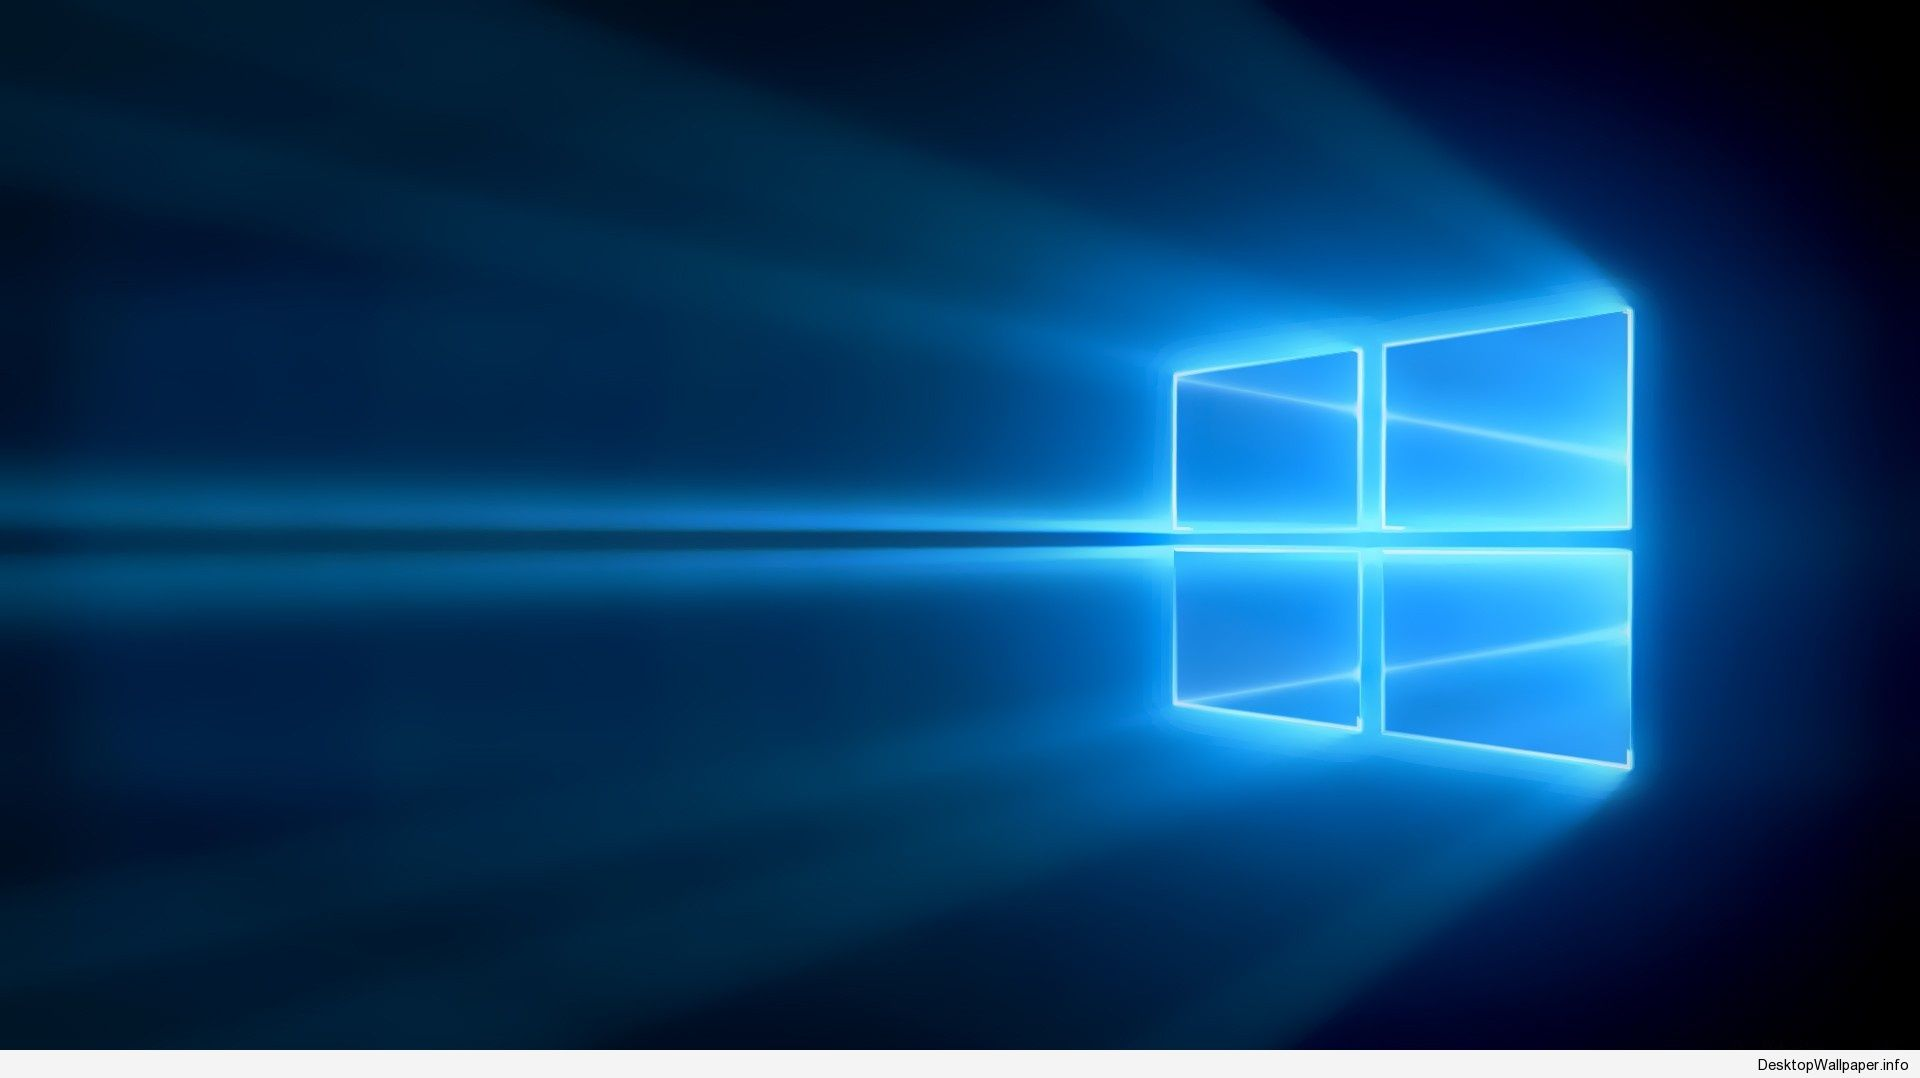 Windows 10 Background Wallpaper Hd Http Desktopwallpaper Info Windows 10 Background Wallpaper Hd Wallpaper Windows 10 Windows 10 Logo Windows 10 Background